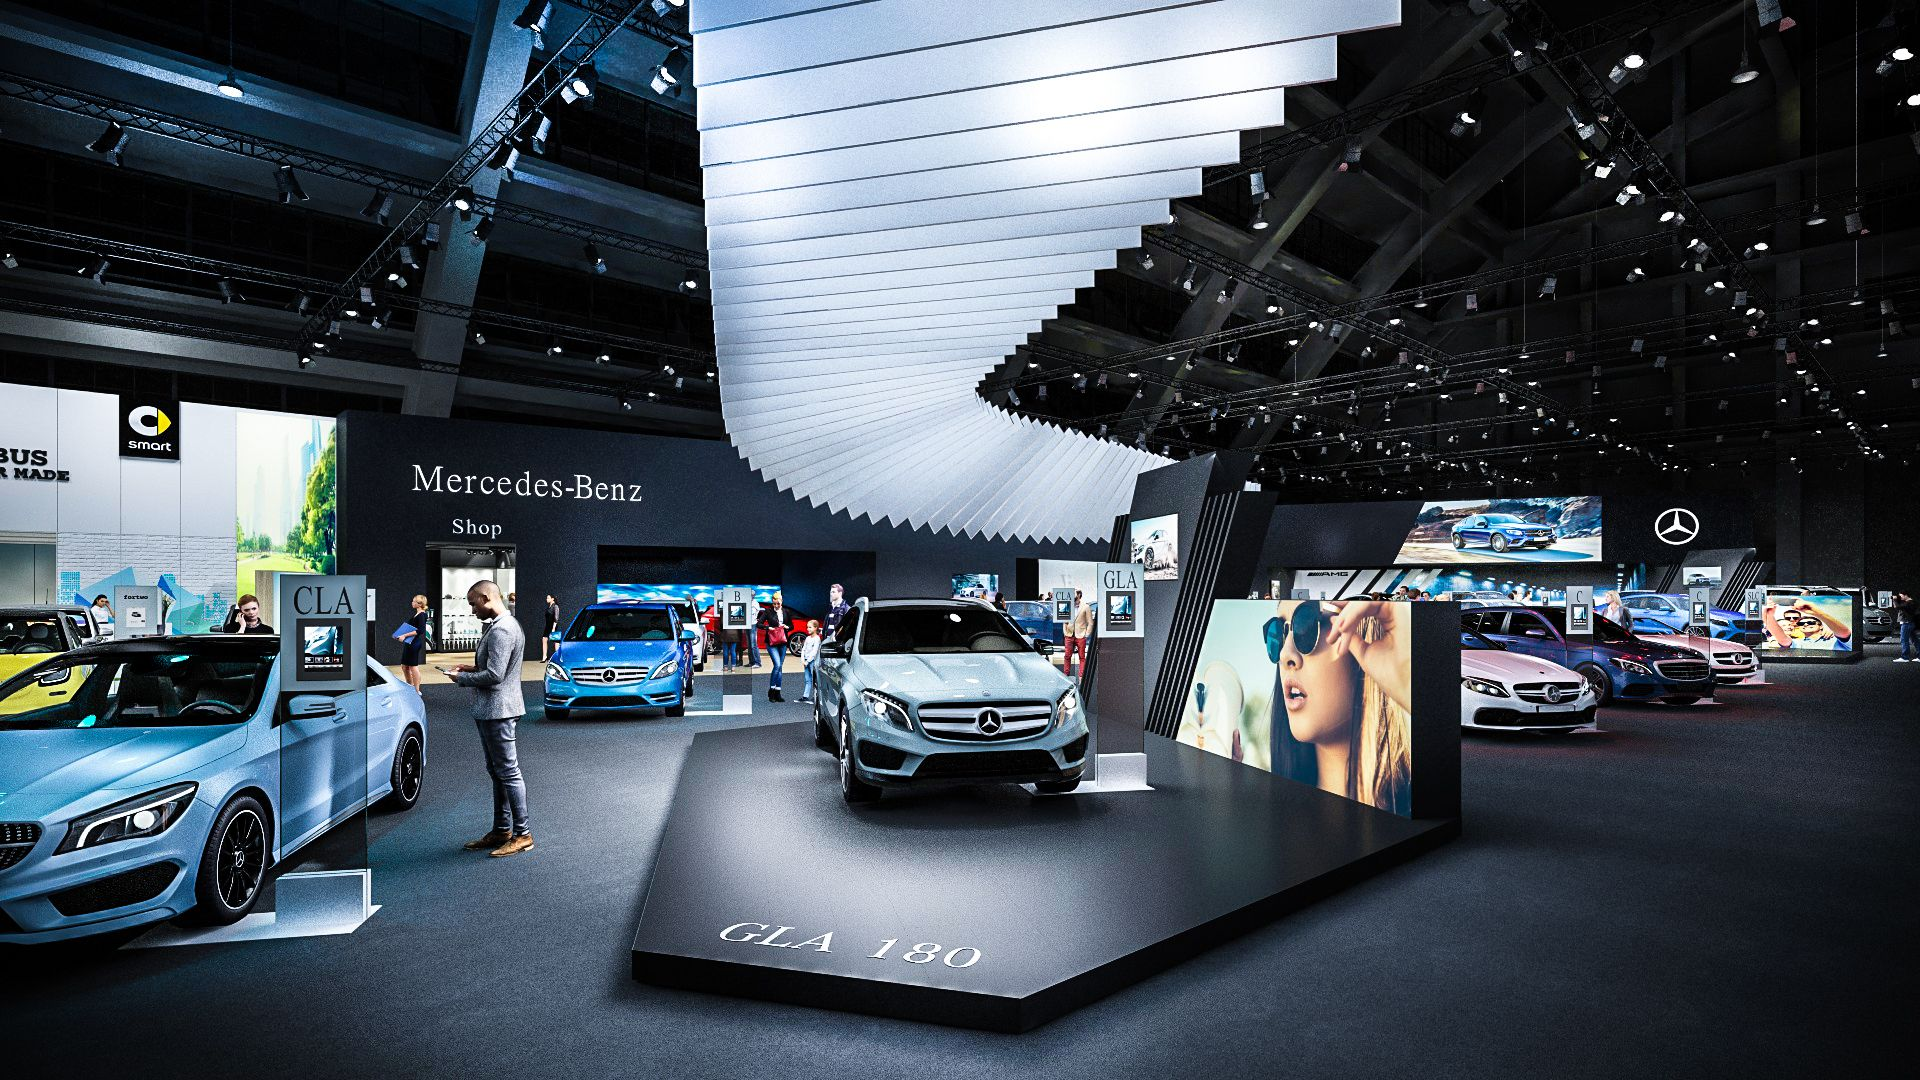 Exhibition Stand Car : Exhibition stand visualization for mercedes benz car